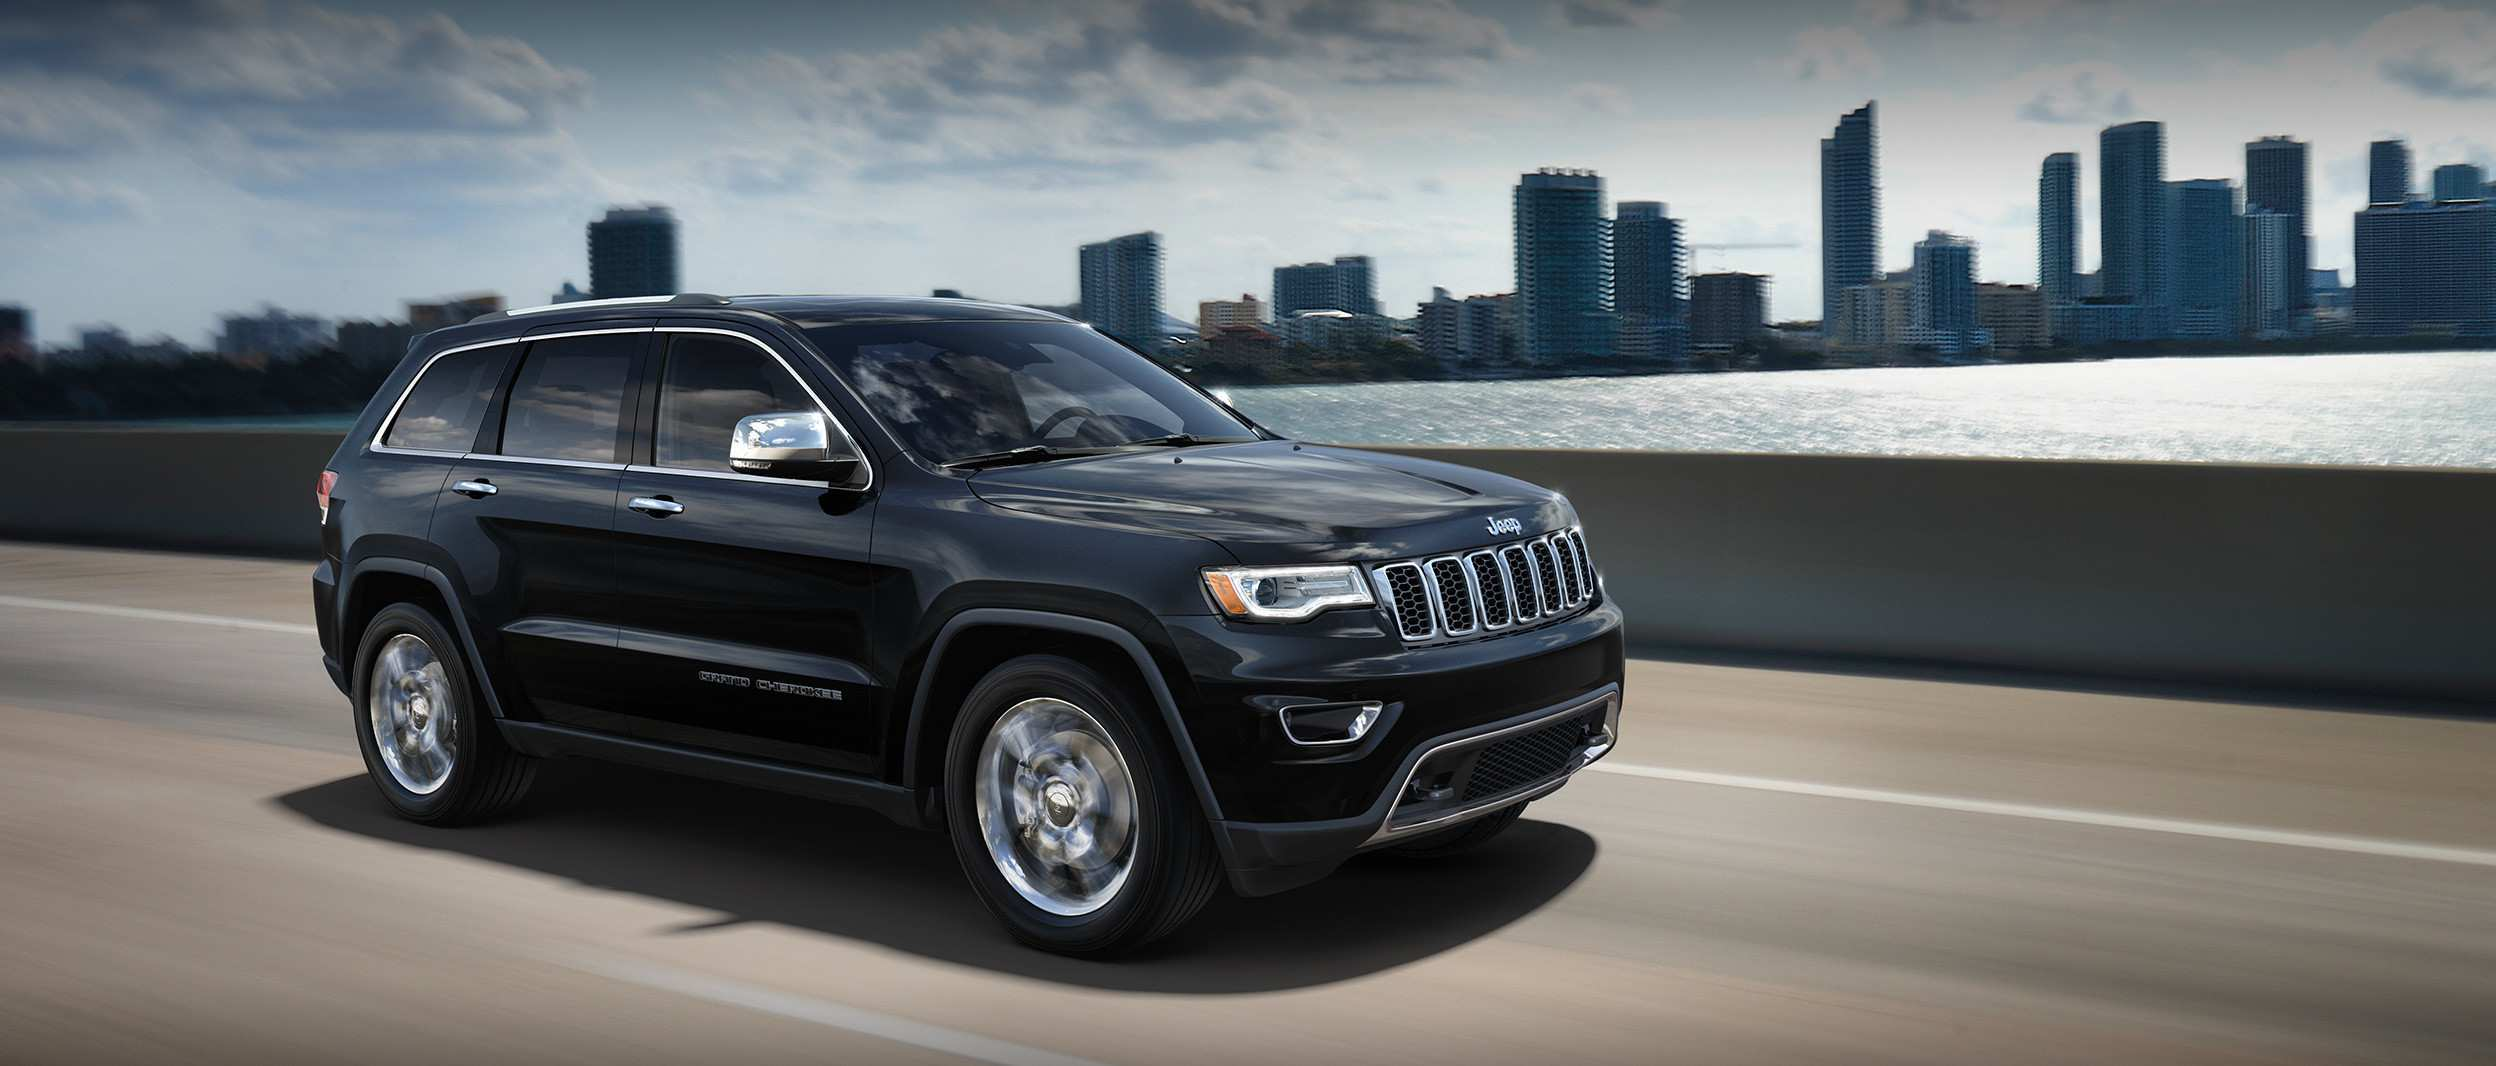 74 All New Jeep Limited 2020 Style